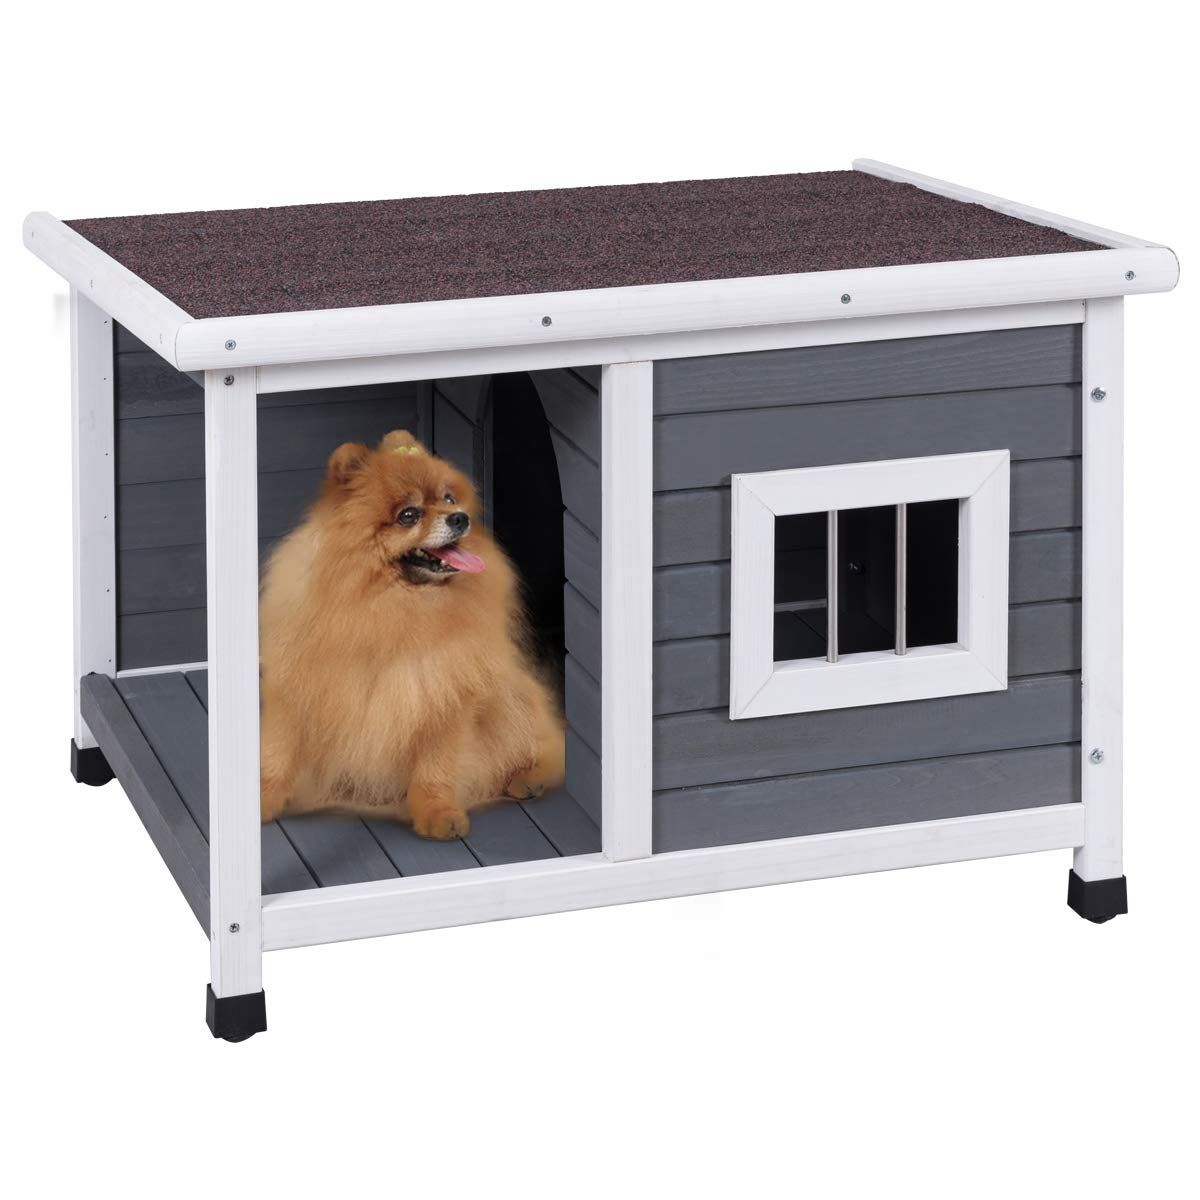 Petsjoy Pet Cat Dog House Wooden Dog Cat Room Shelter Weatherproof Puppy House Kitty Condo Room With Plat Outdoor Dog House Dog House For Sale Wood Dog House